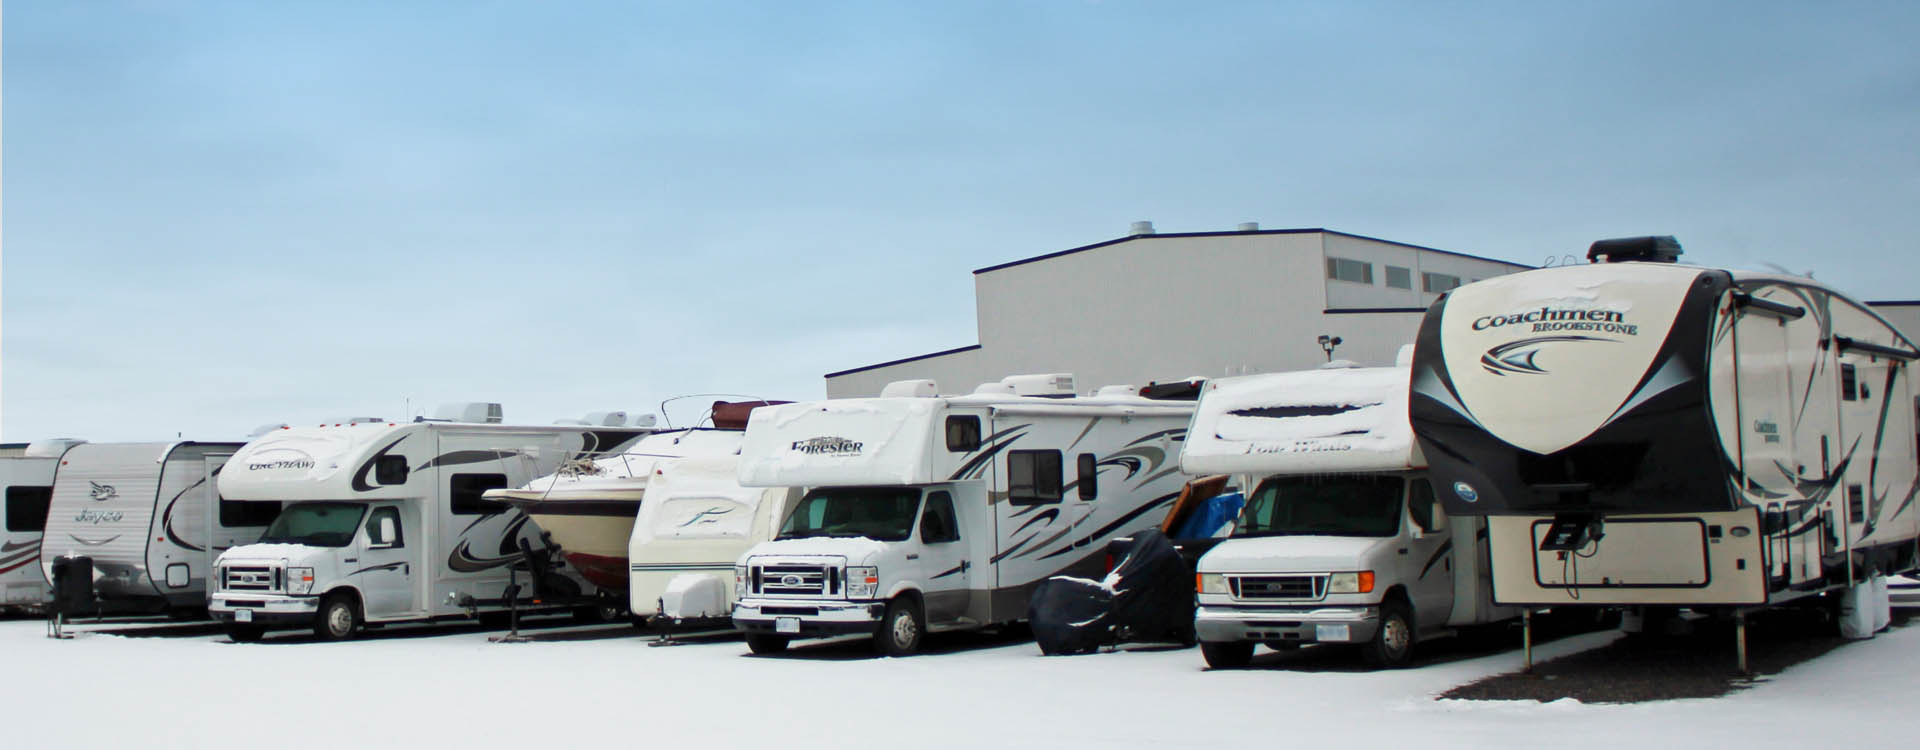 Outdoor RV Storage Fort Henry Brantford